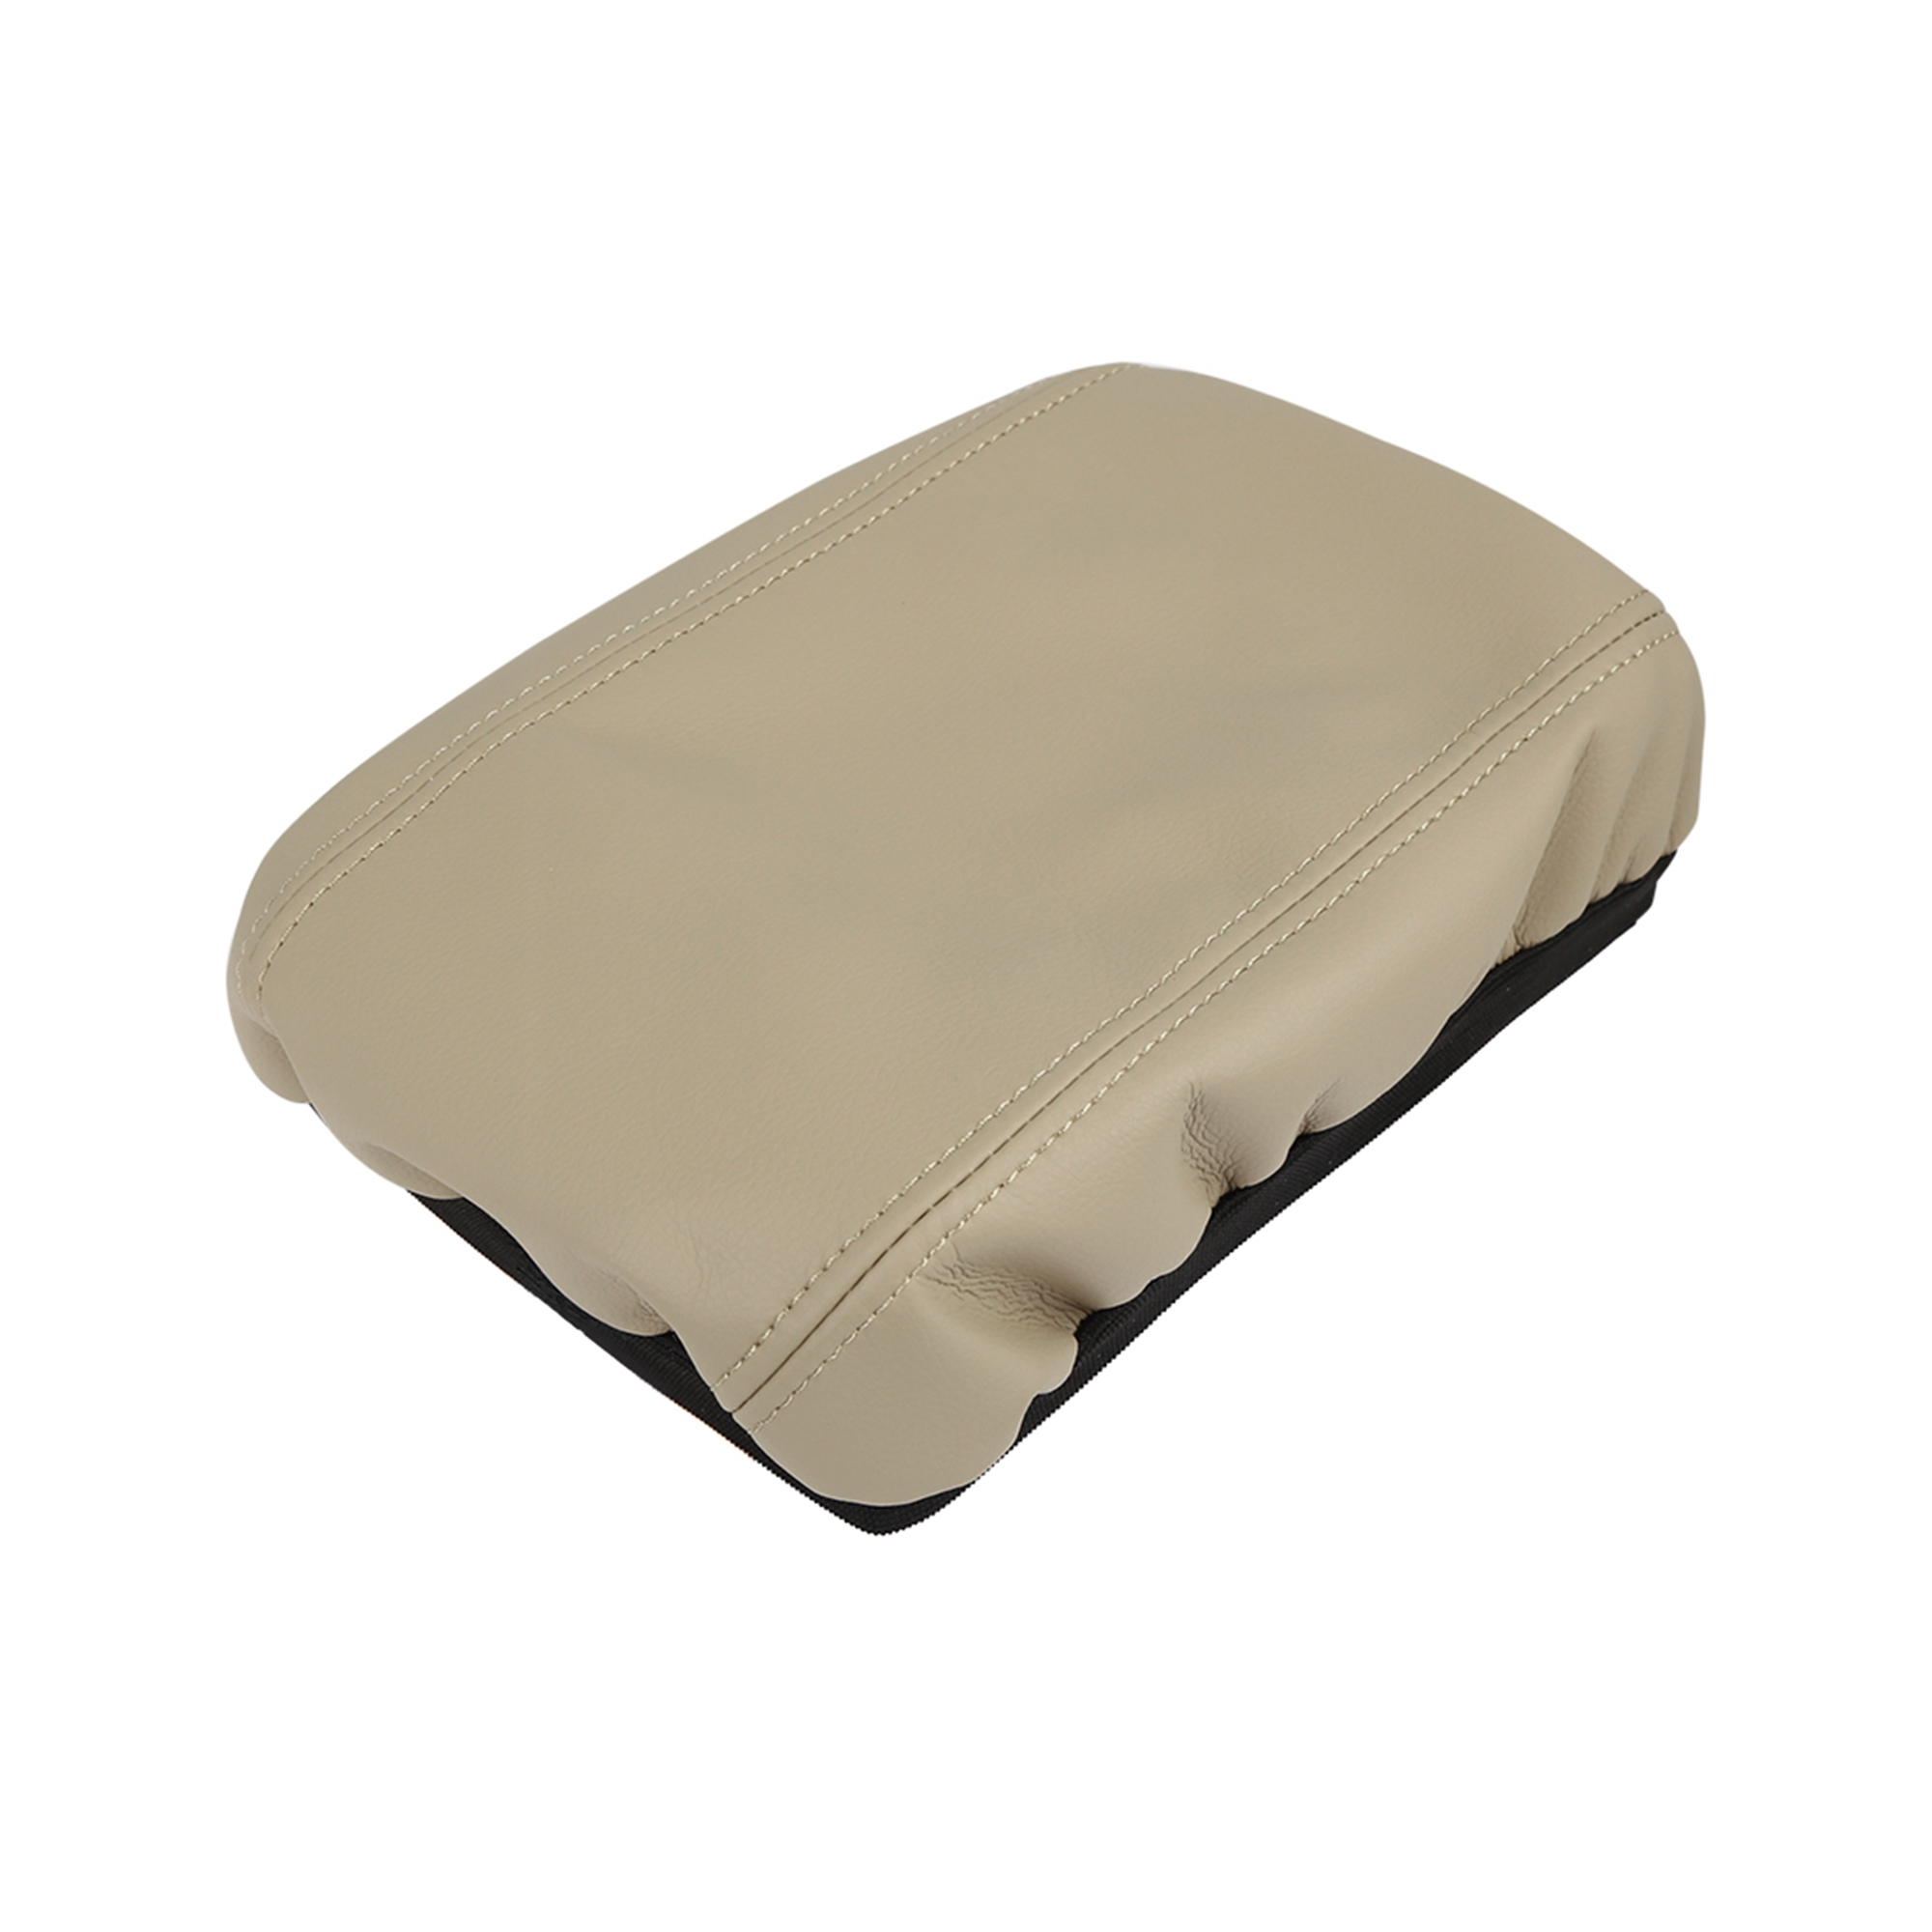 Microfiber Leather Center Console Lid Armrest Cover Beige for 07-11 Honda Civic